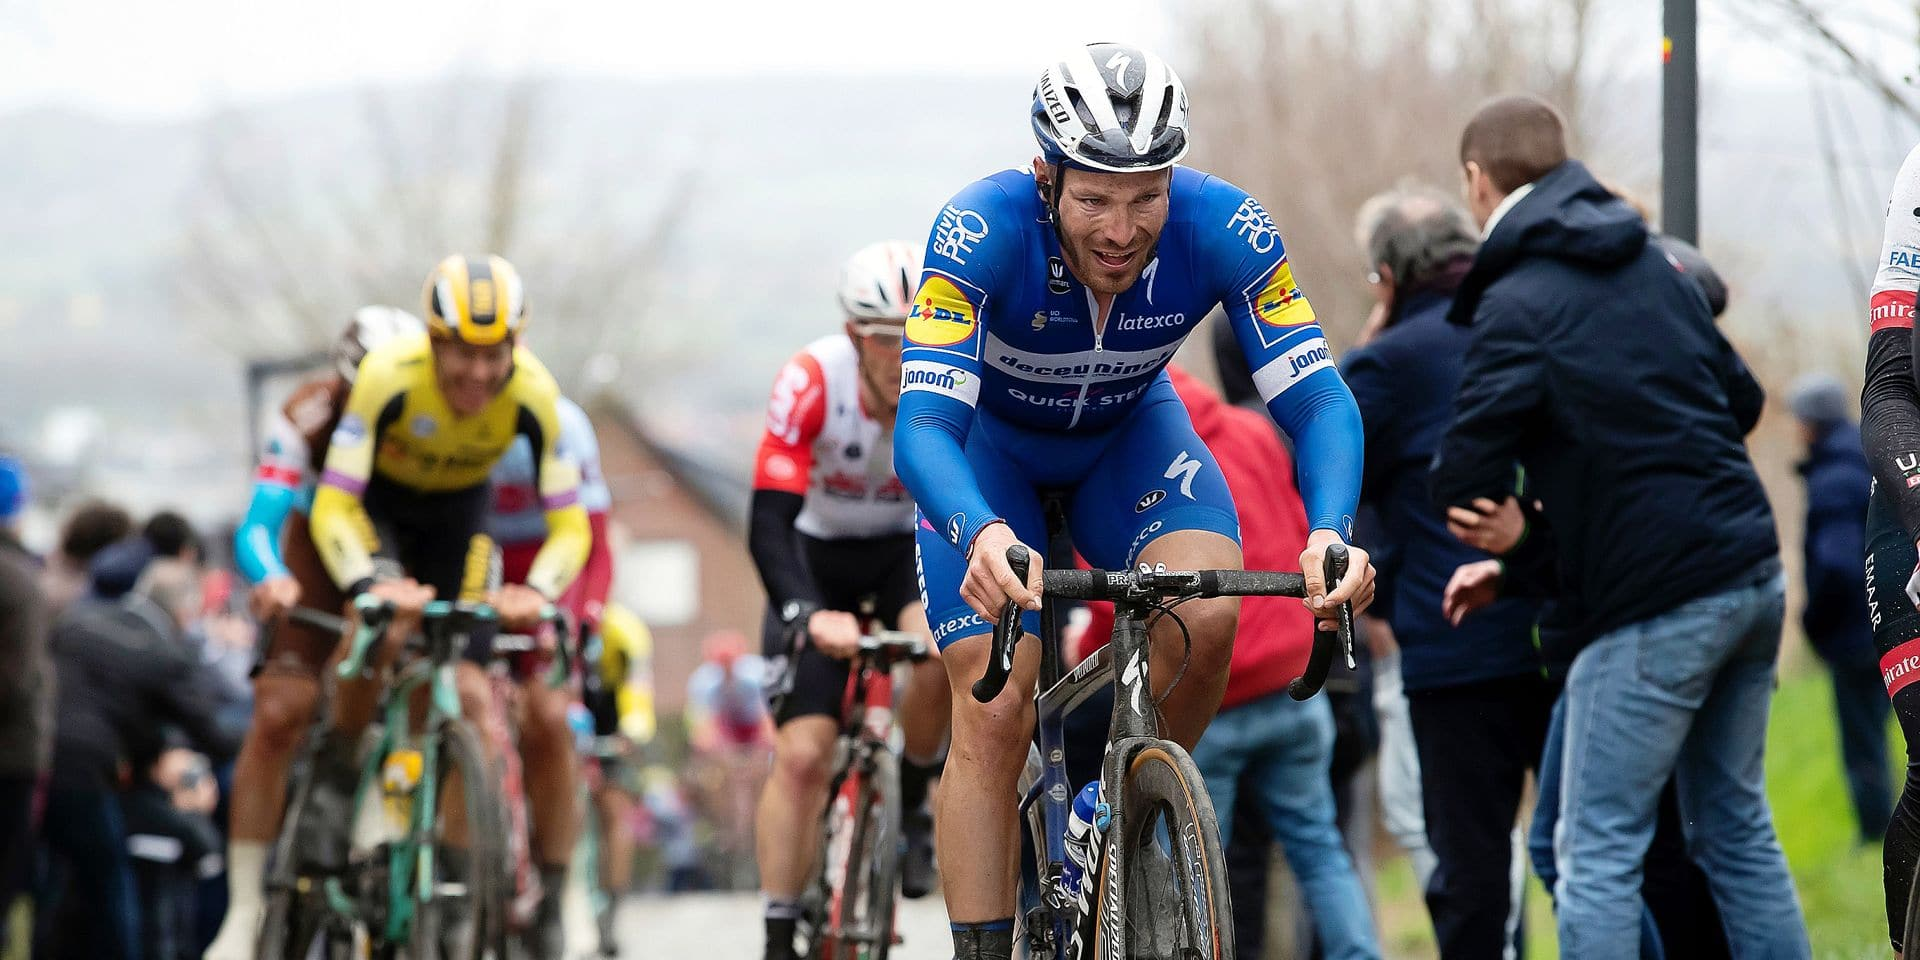 French Florian Senechal of Deceuninck - Quick-Step pictured in action during the 71st edition of the Kuurne-Brussels-Kuurne one day cycling race, 200,1 km from Kuurne to Kuurne via Brussels, Sunday 03 March 2019. BELGA PHOTO KRISTOF VAN ACCOM